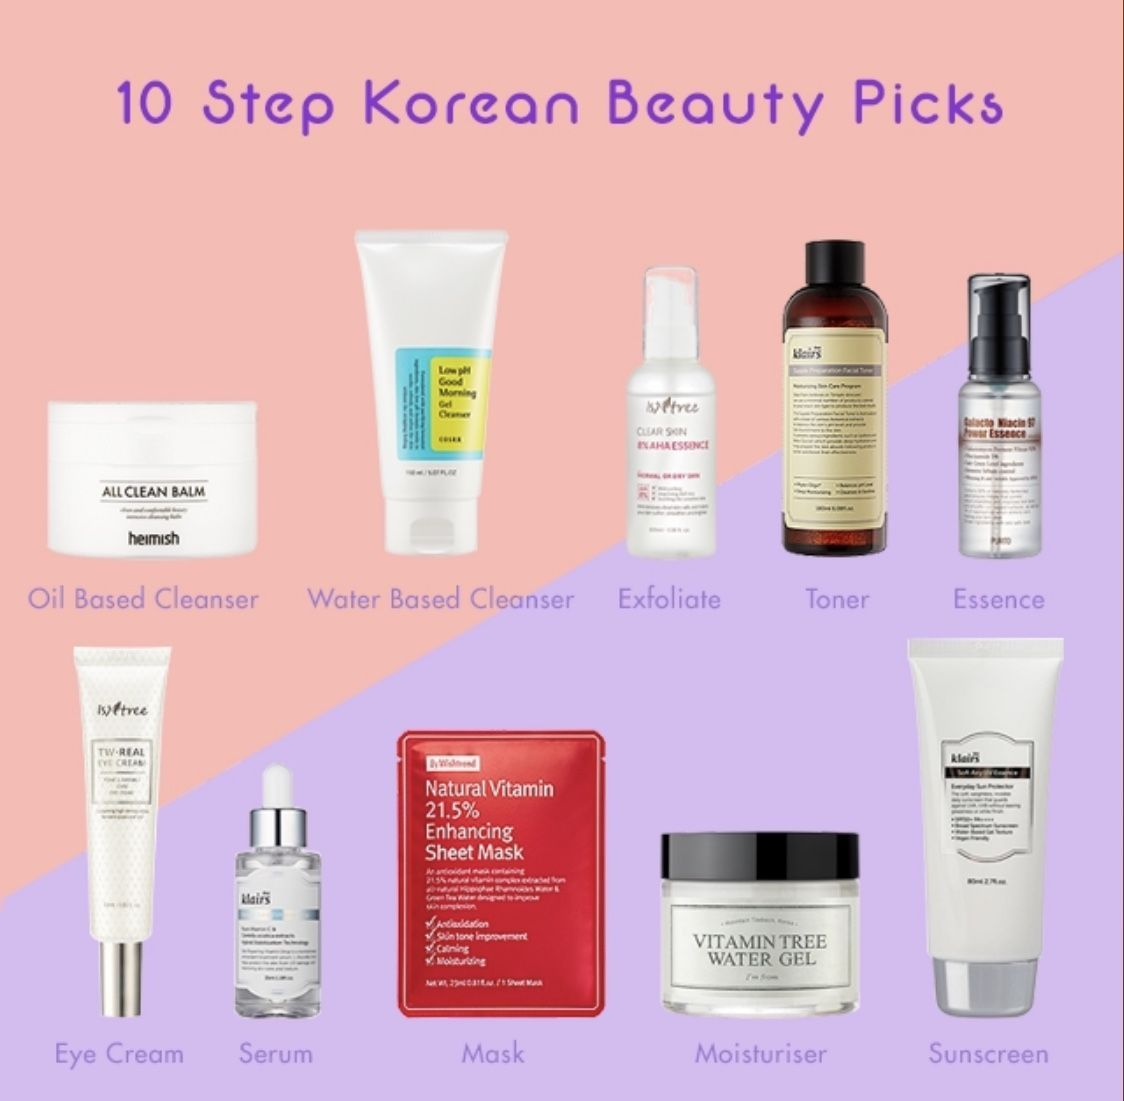 10 Step Korean Skincare Routine Kbeauty Korean Cosmetics Beauty Products Skincare Rou In 2020 Korean Skincare Routine Korean 10 Step Skin Care Skin Cleanser Products